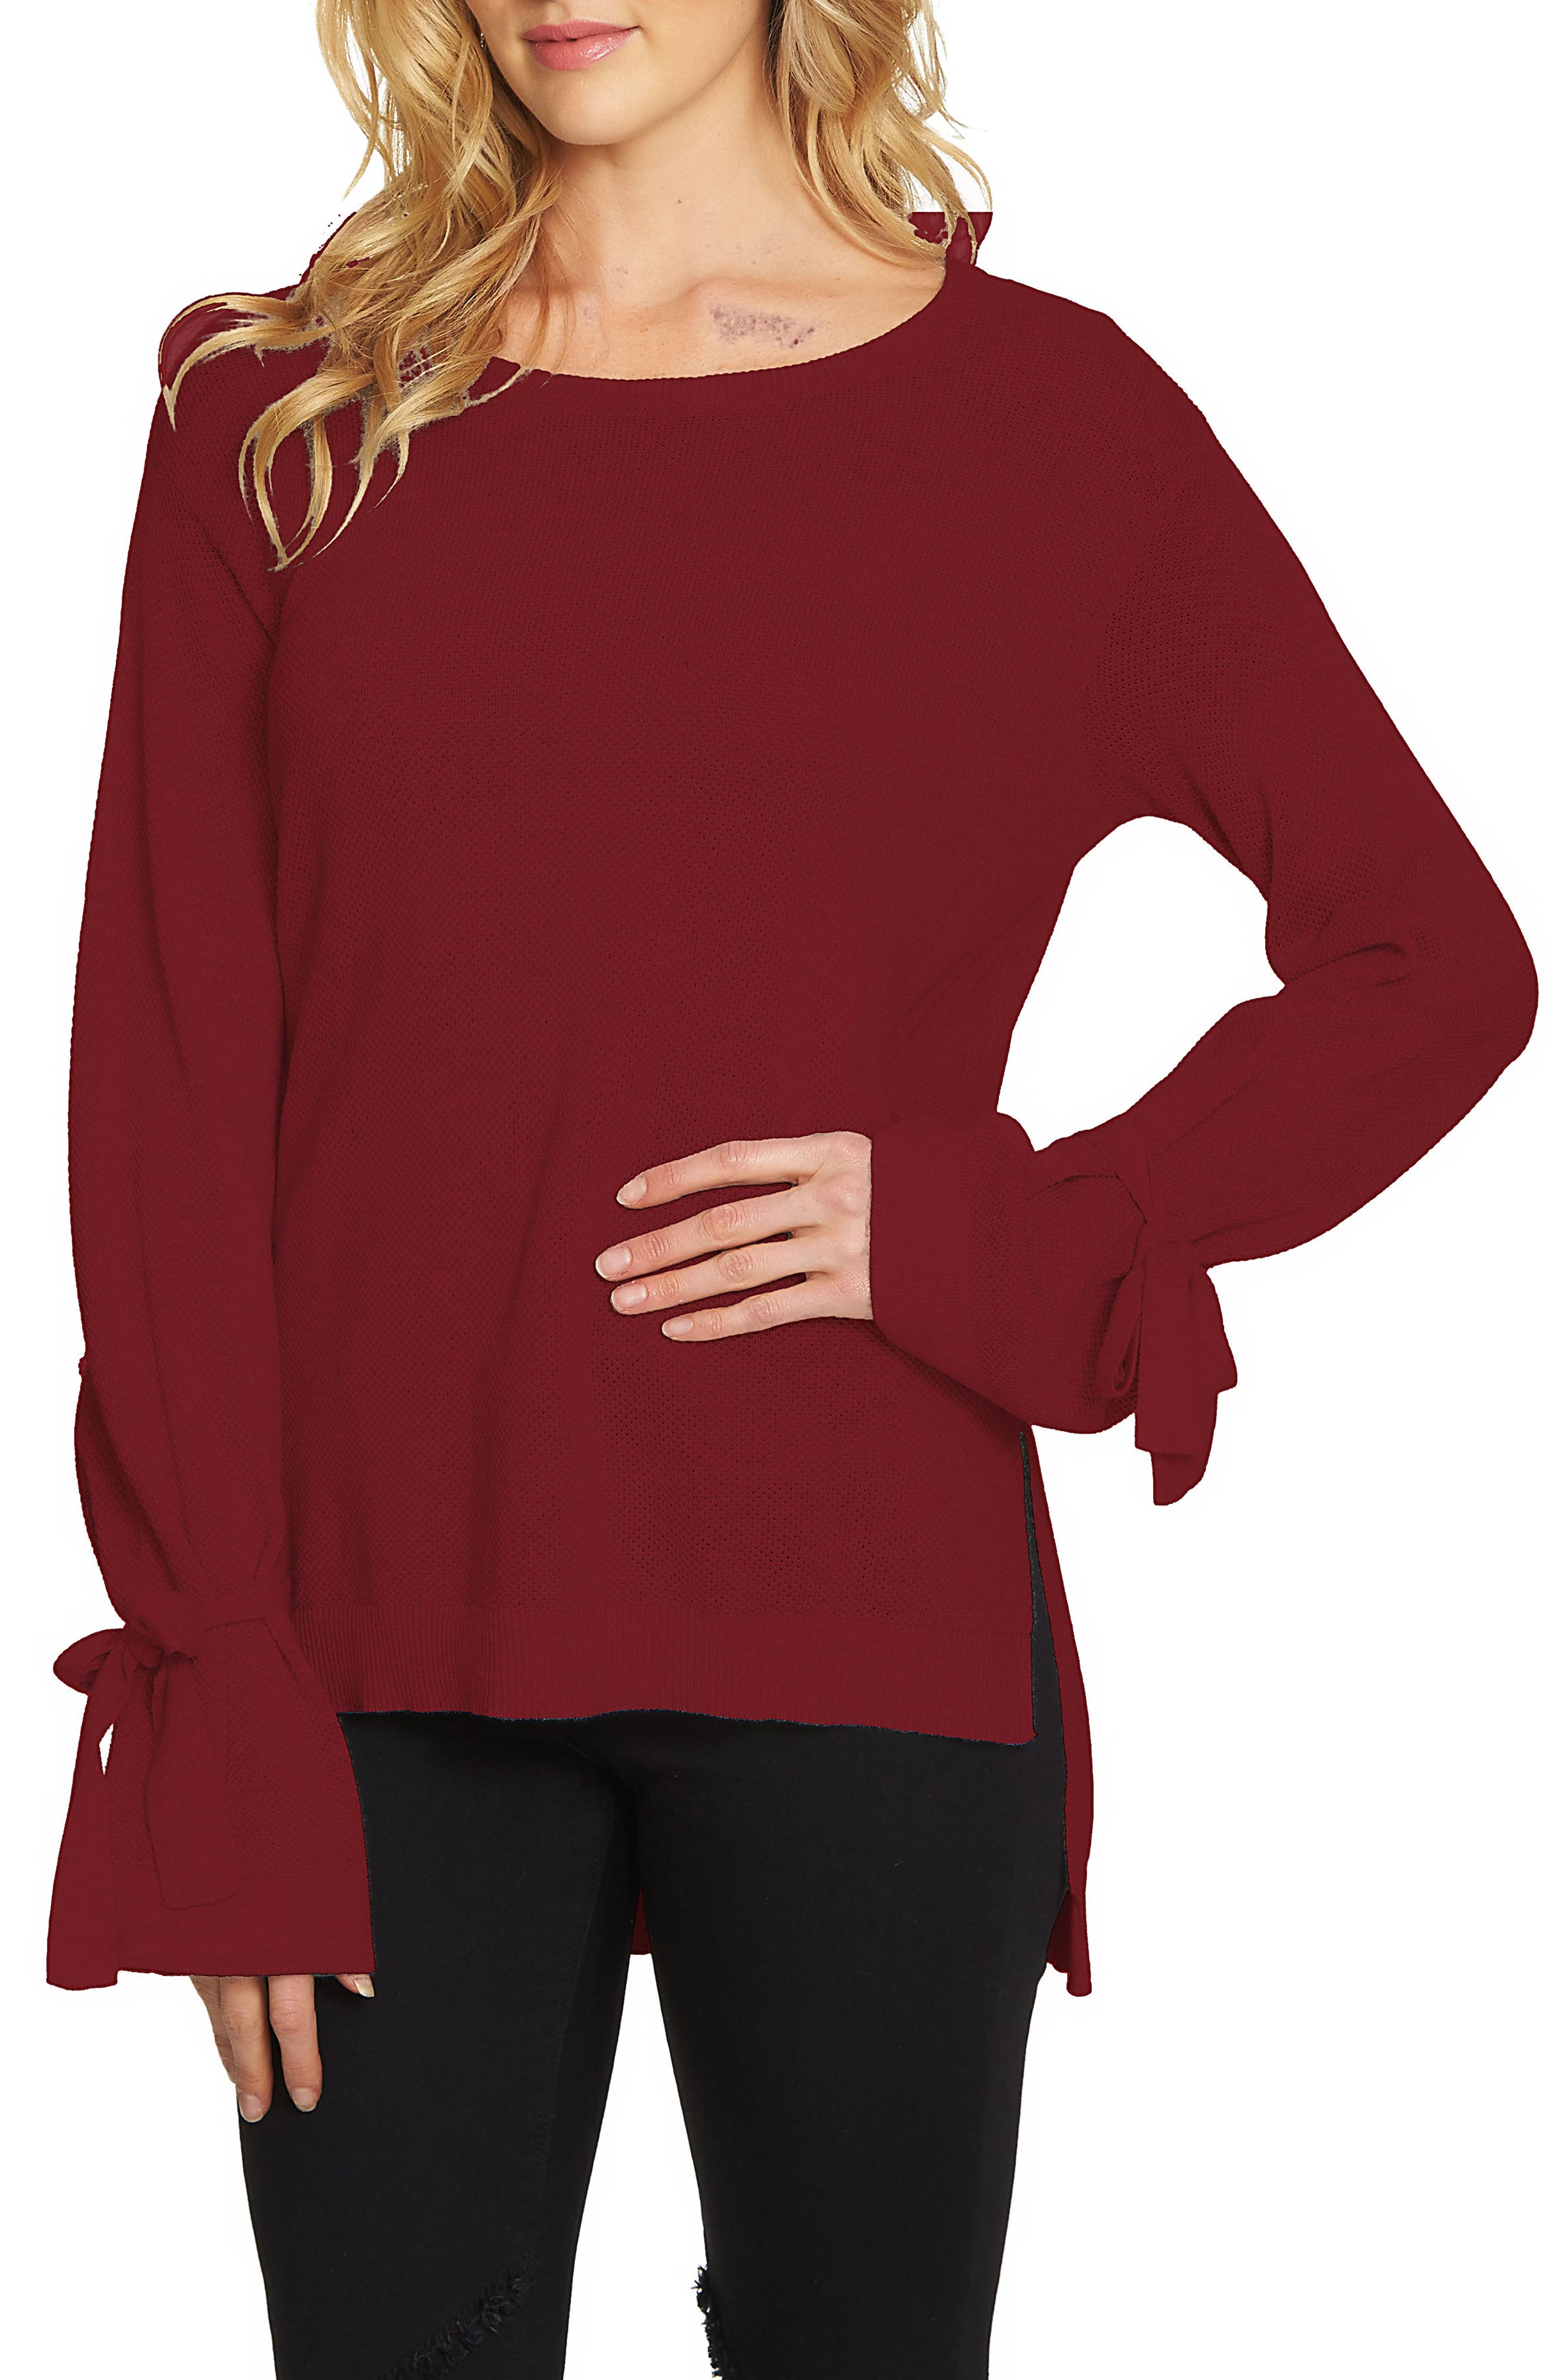 Alternate Image 1 Selected - 1.STATE Tied Bell Sleeve Sweater